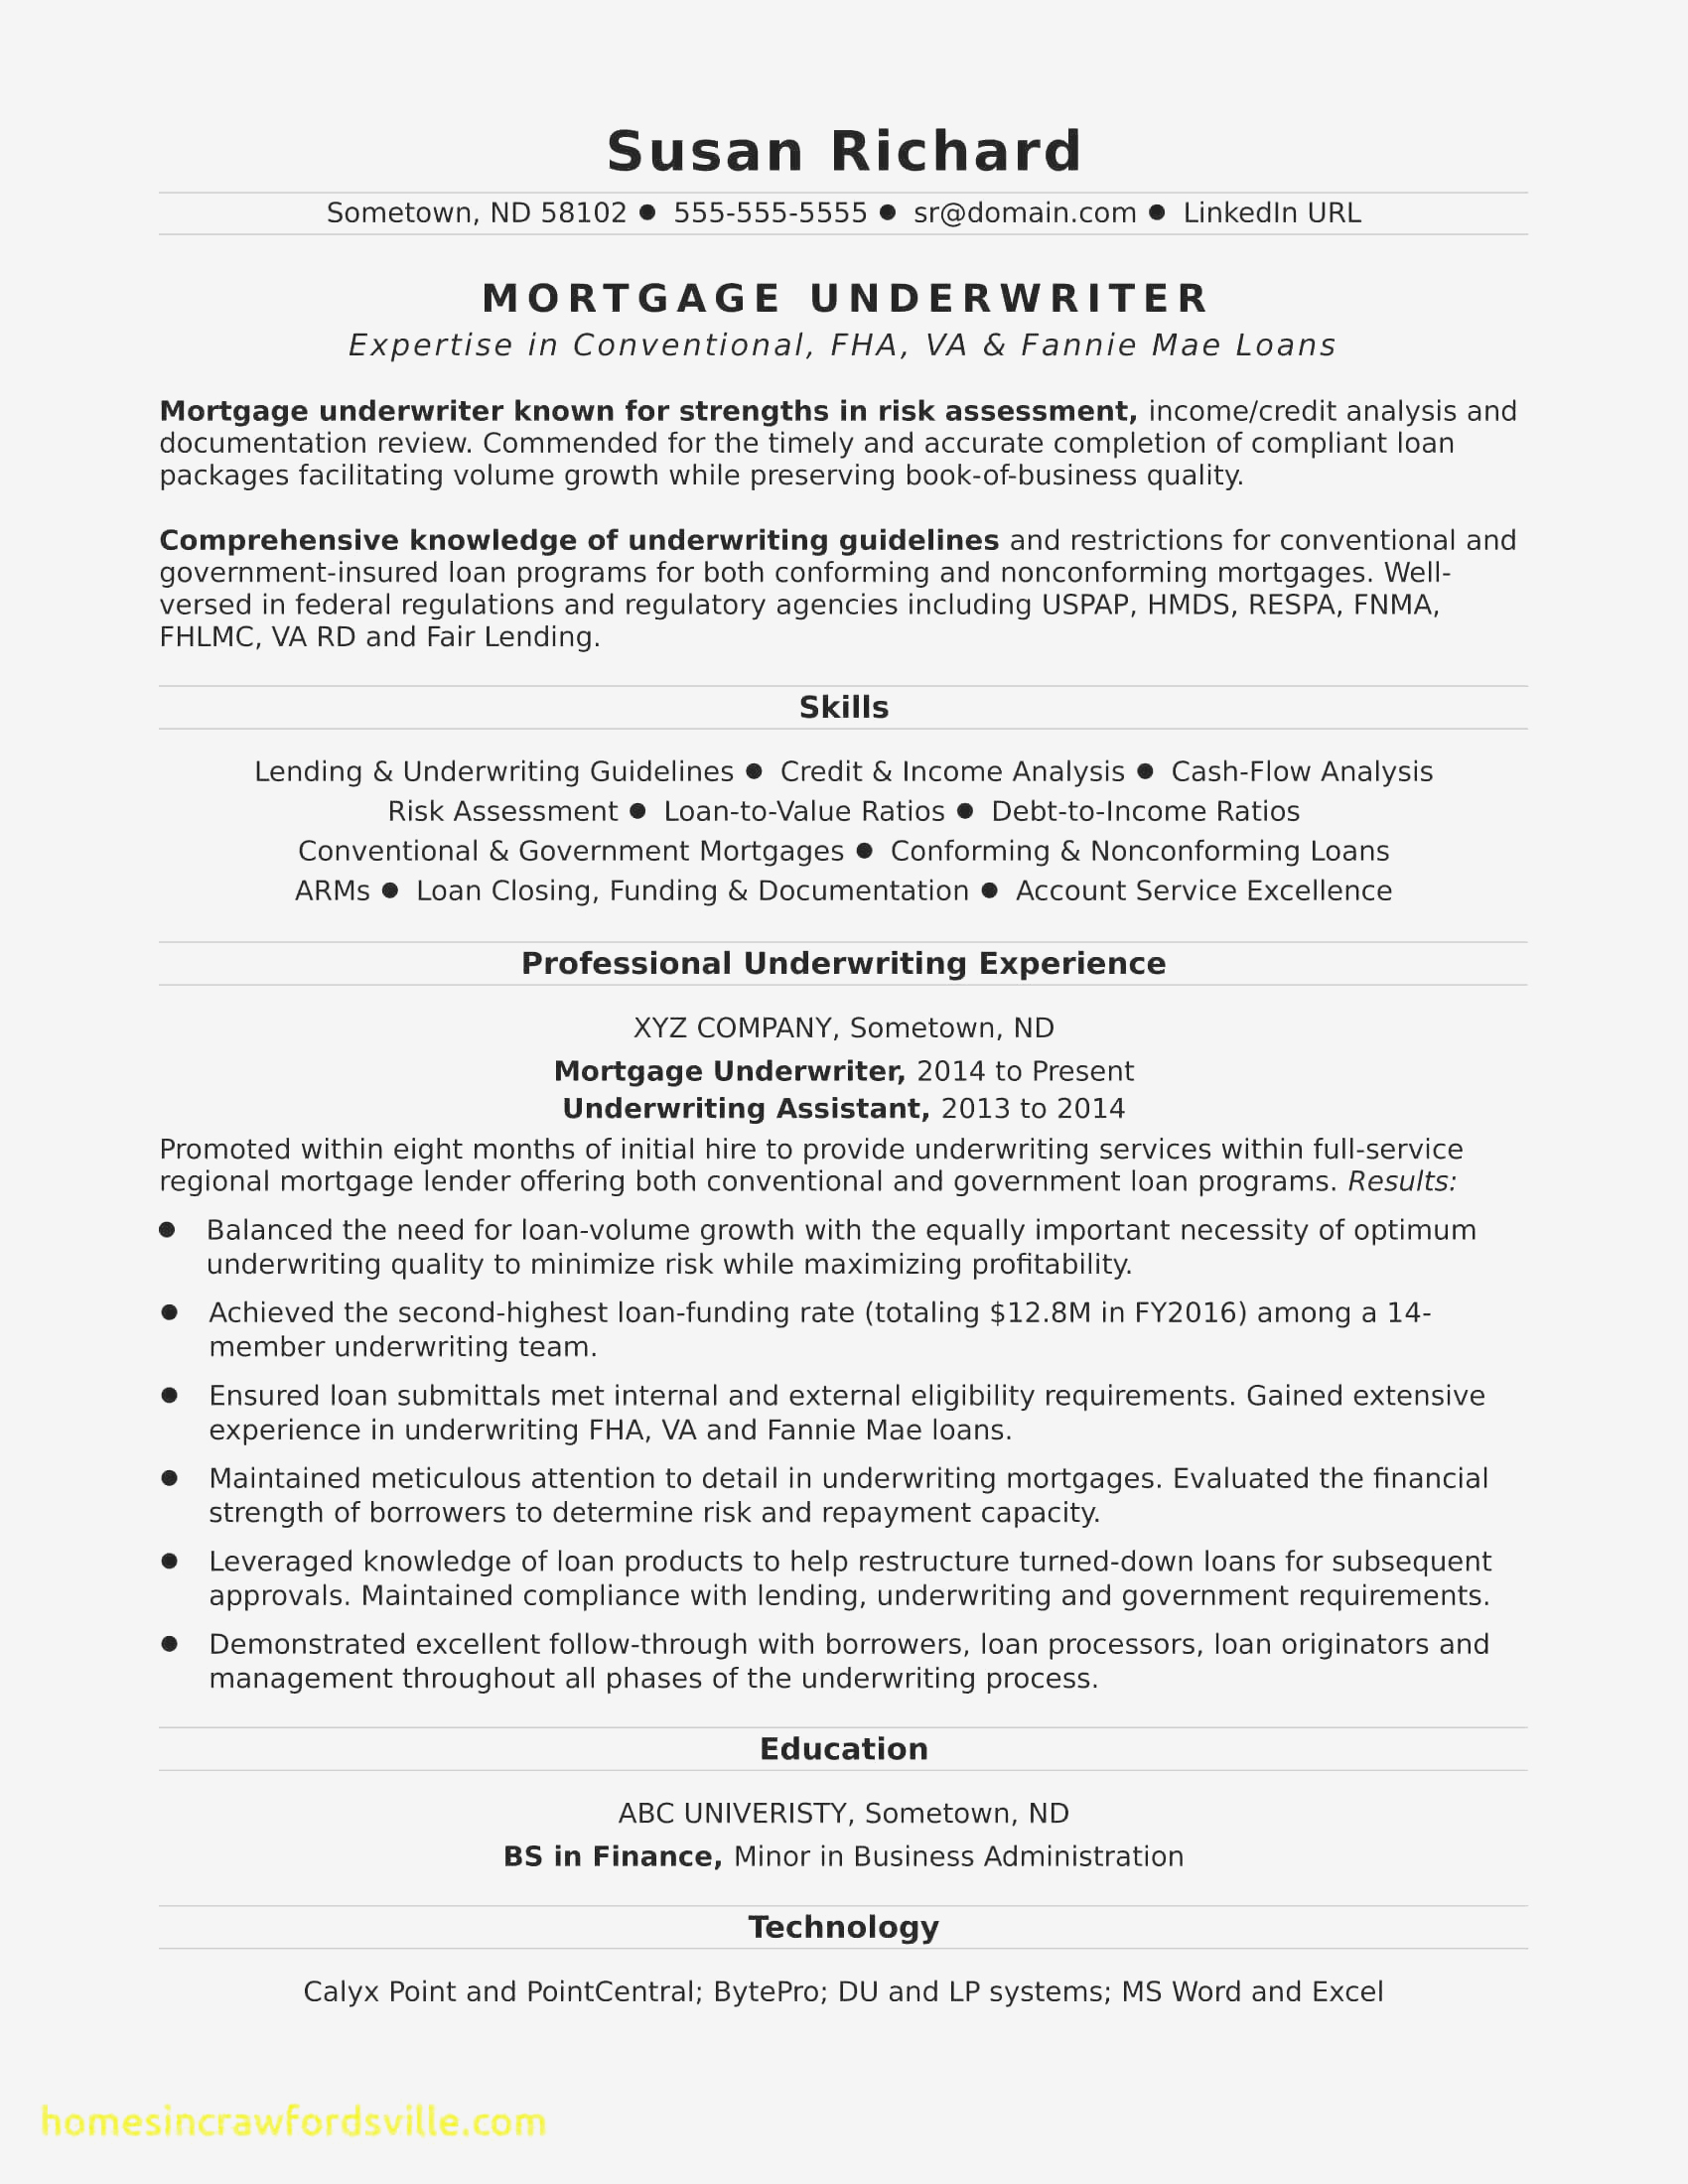 System Analyst Resume - Systems Analyst Cover Letter